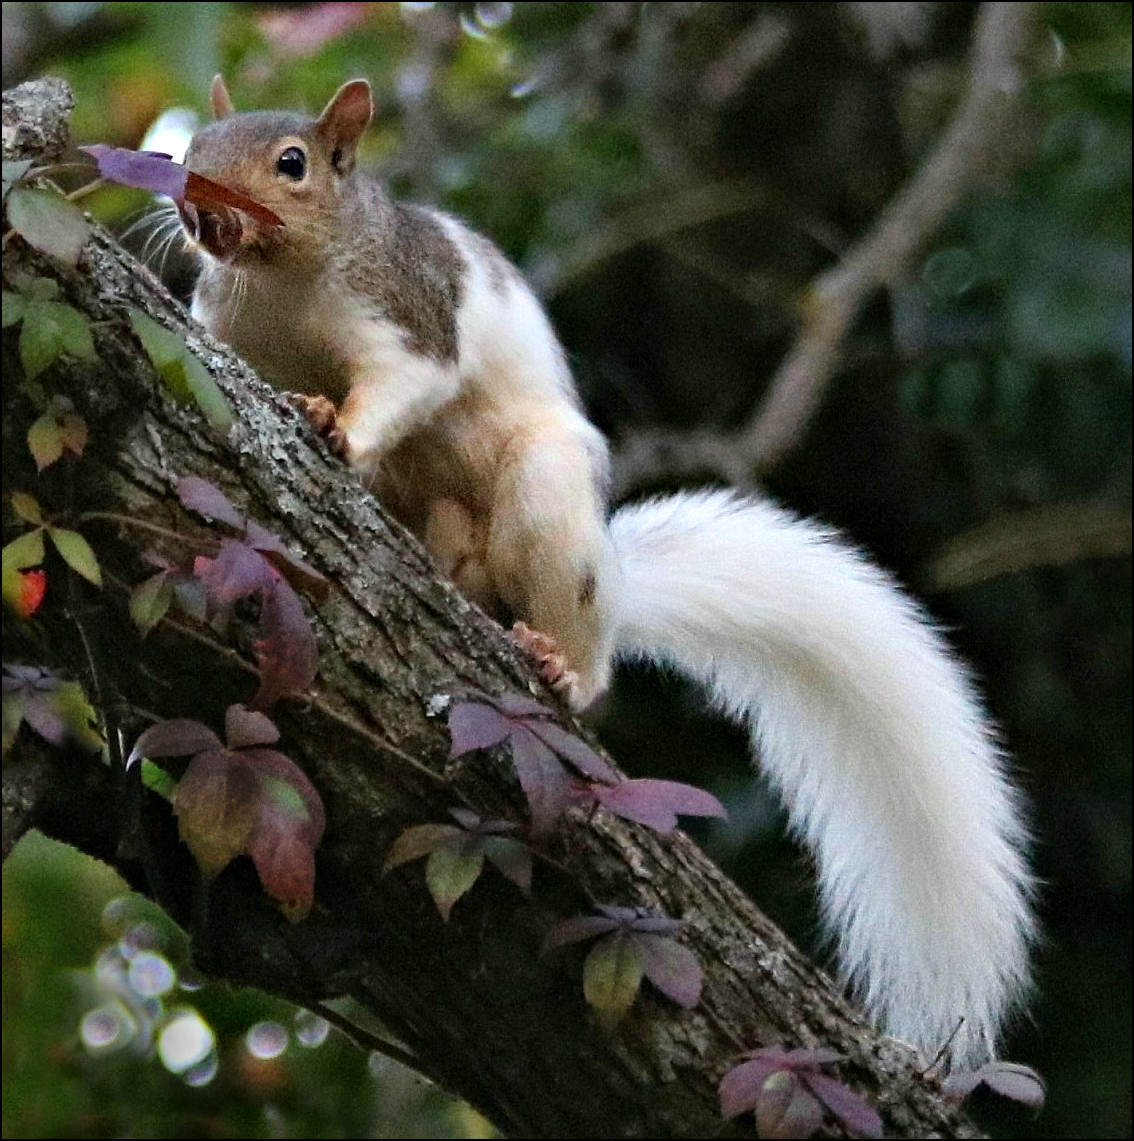 Meaning of white squirrel sighting - Whitesquirrel